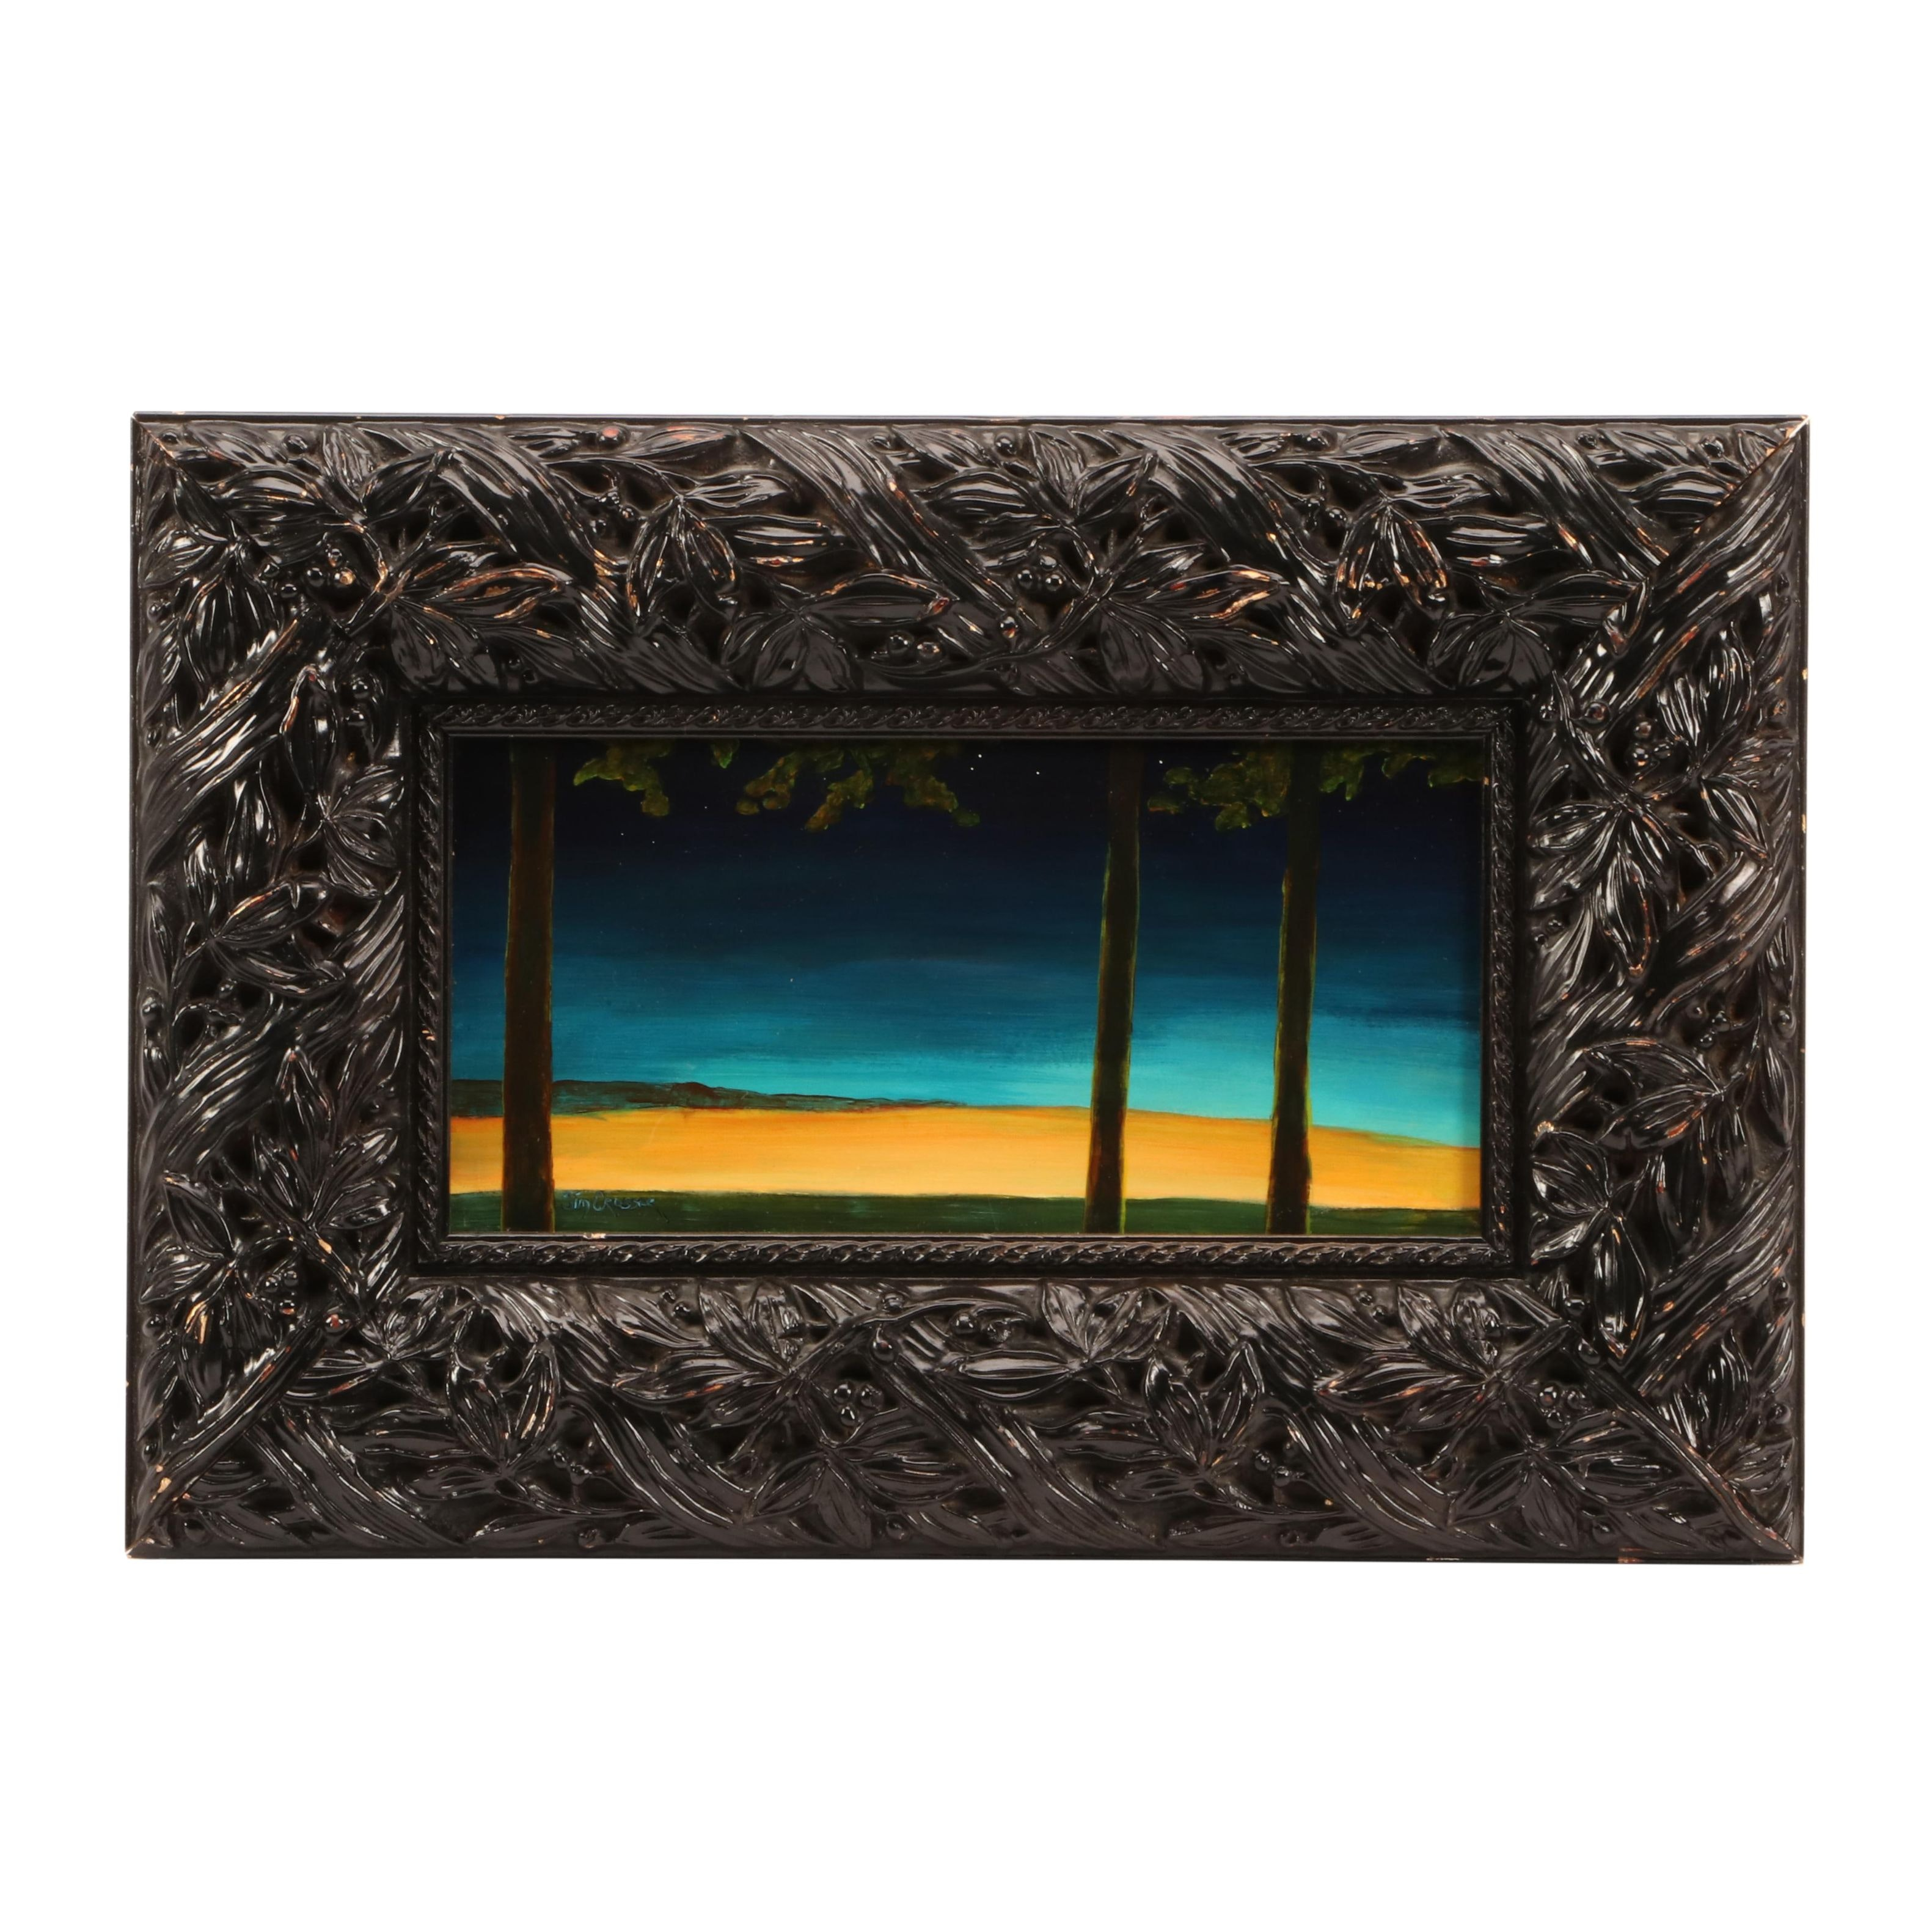 James Crosser Oil Painting of Abstract Nocturnal Landscape